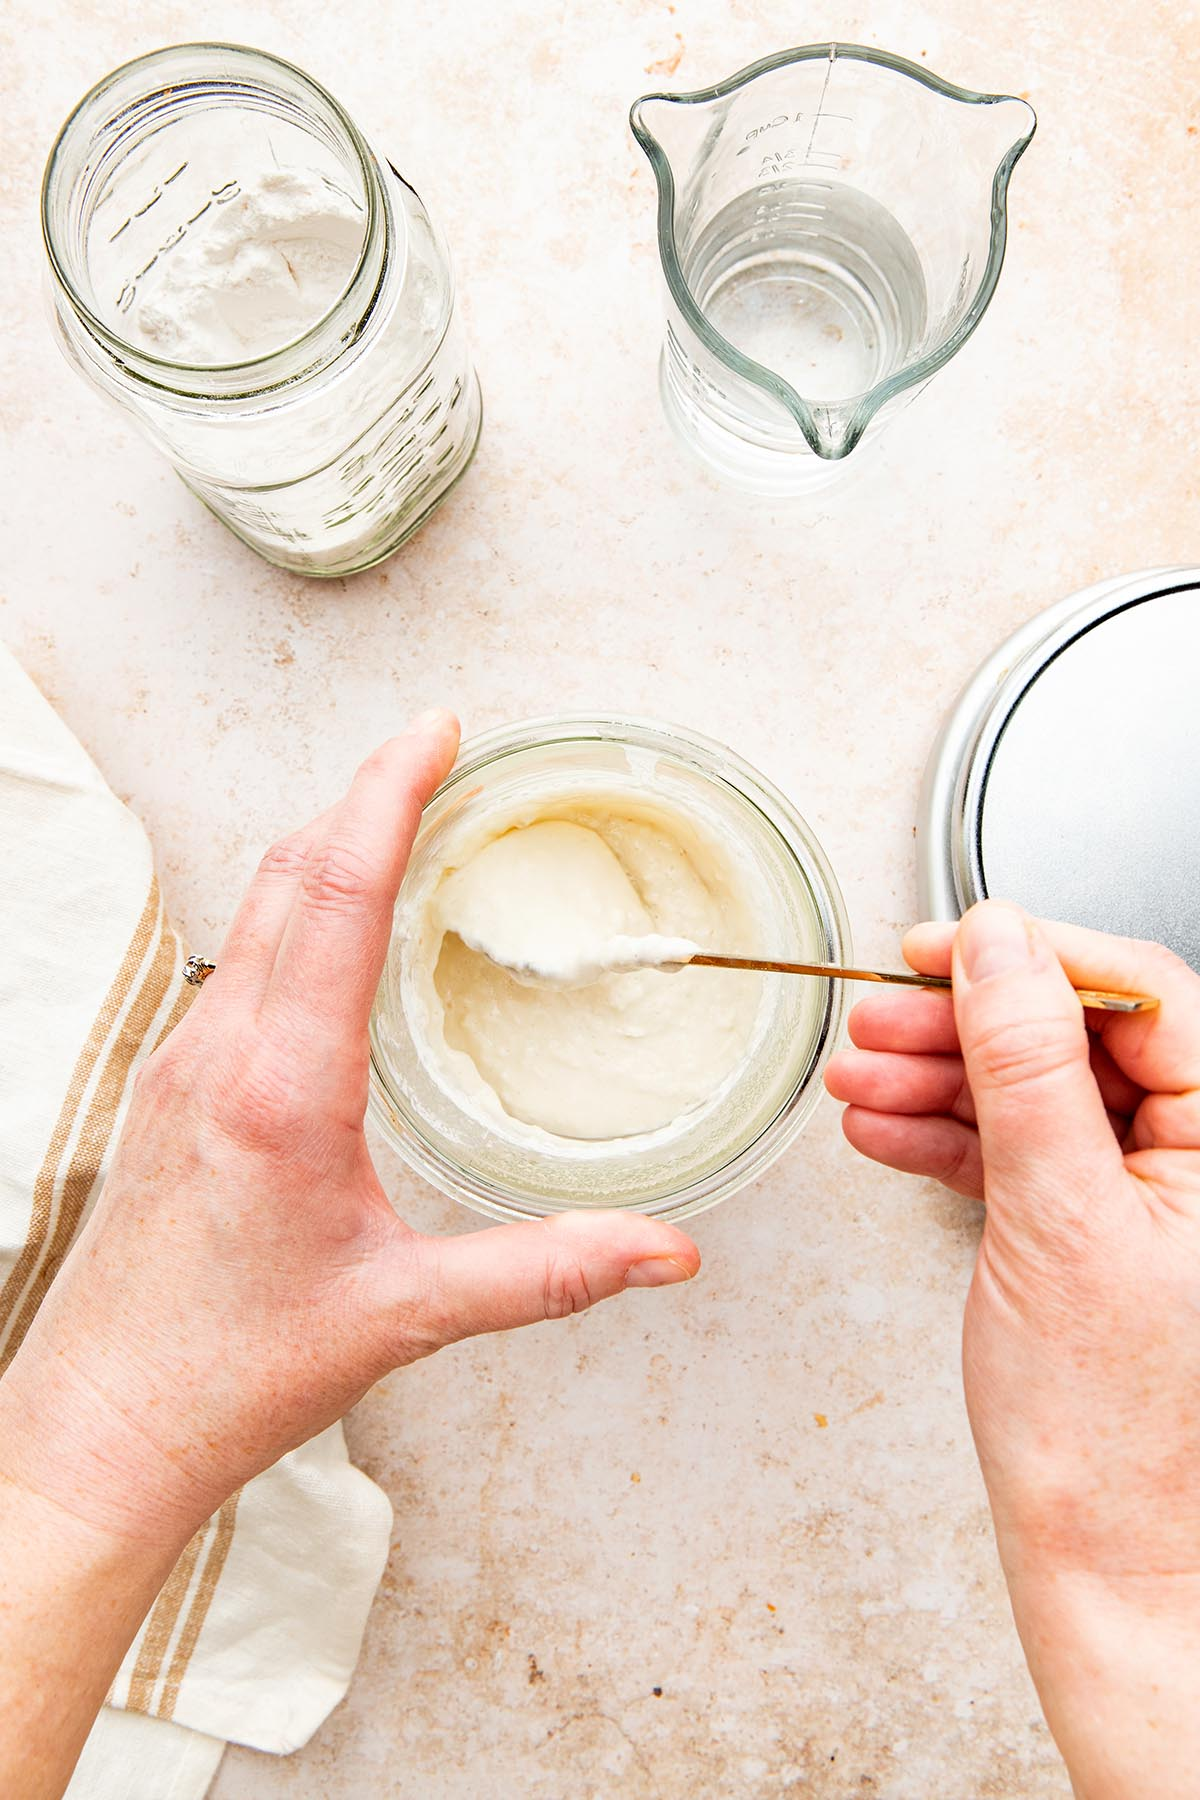 A hand using a spoon to mix a jar of sourdough starter.